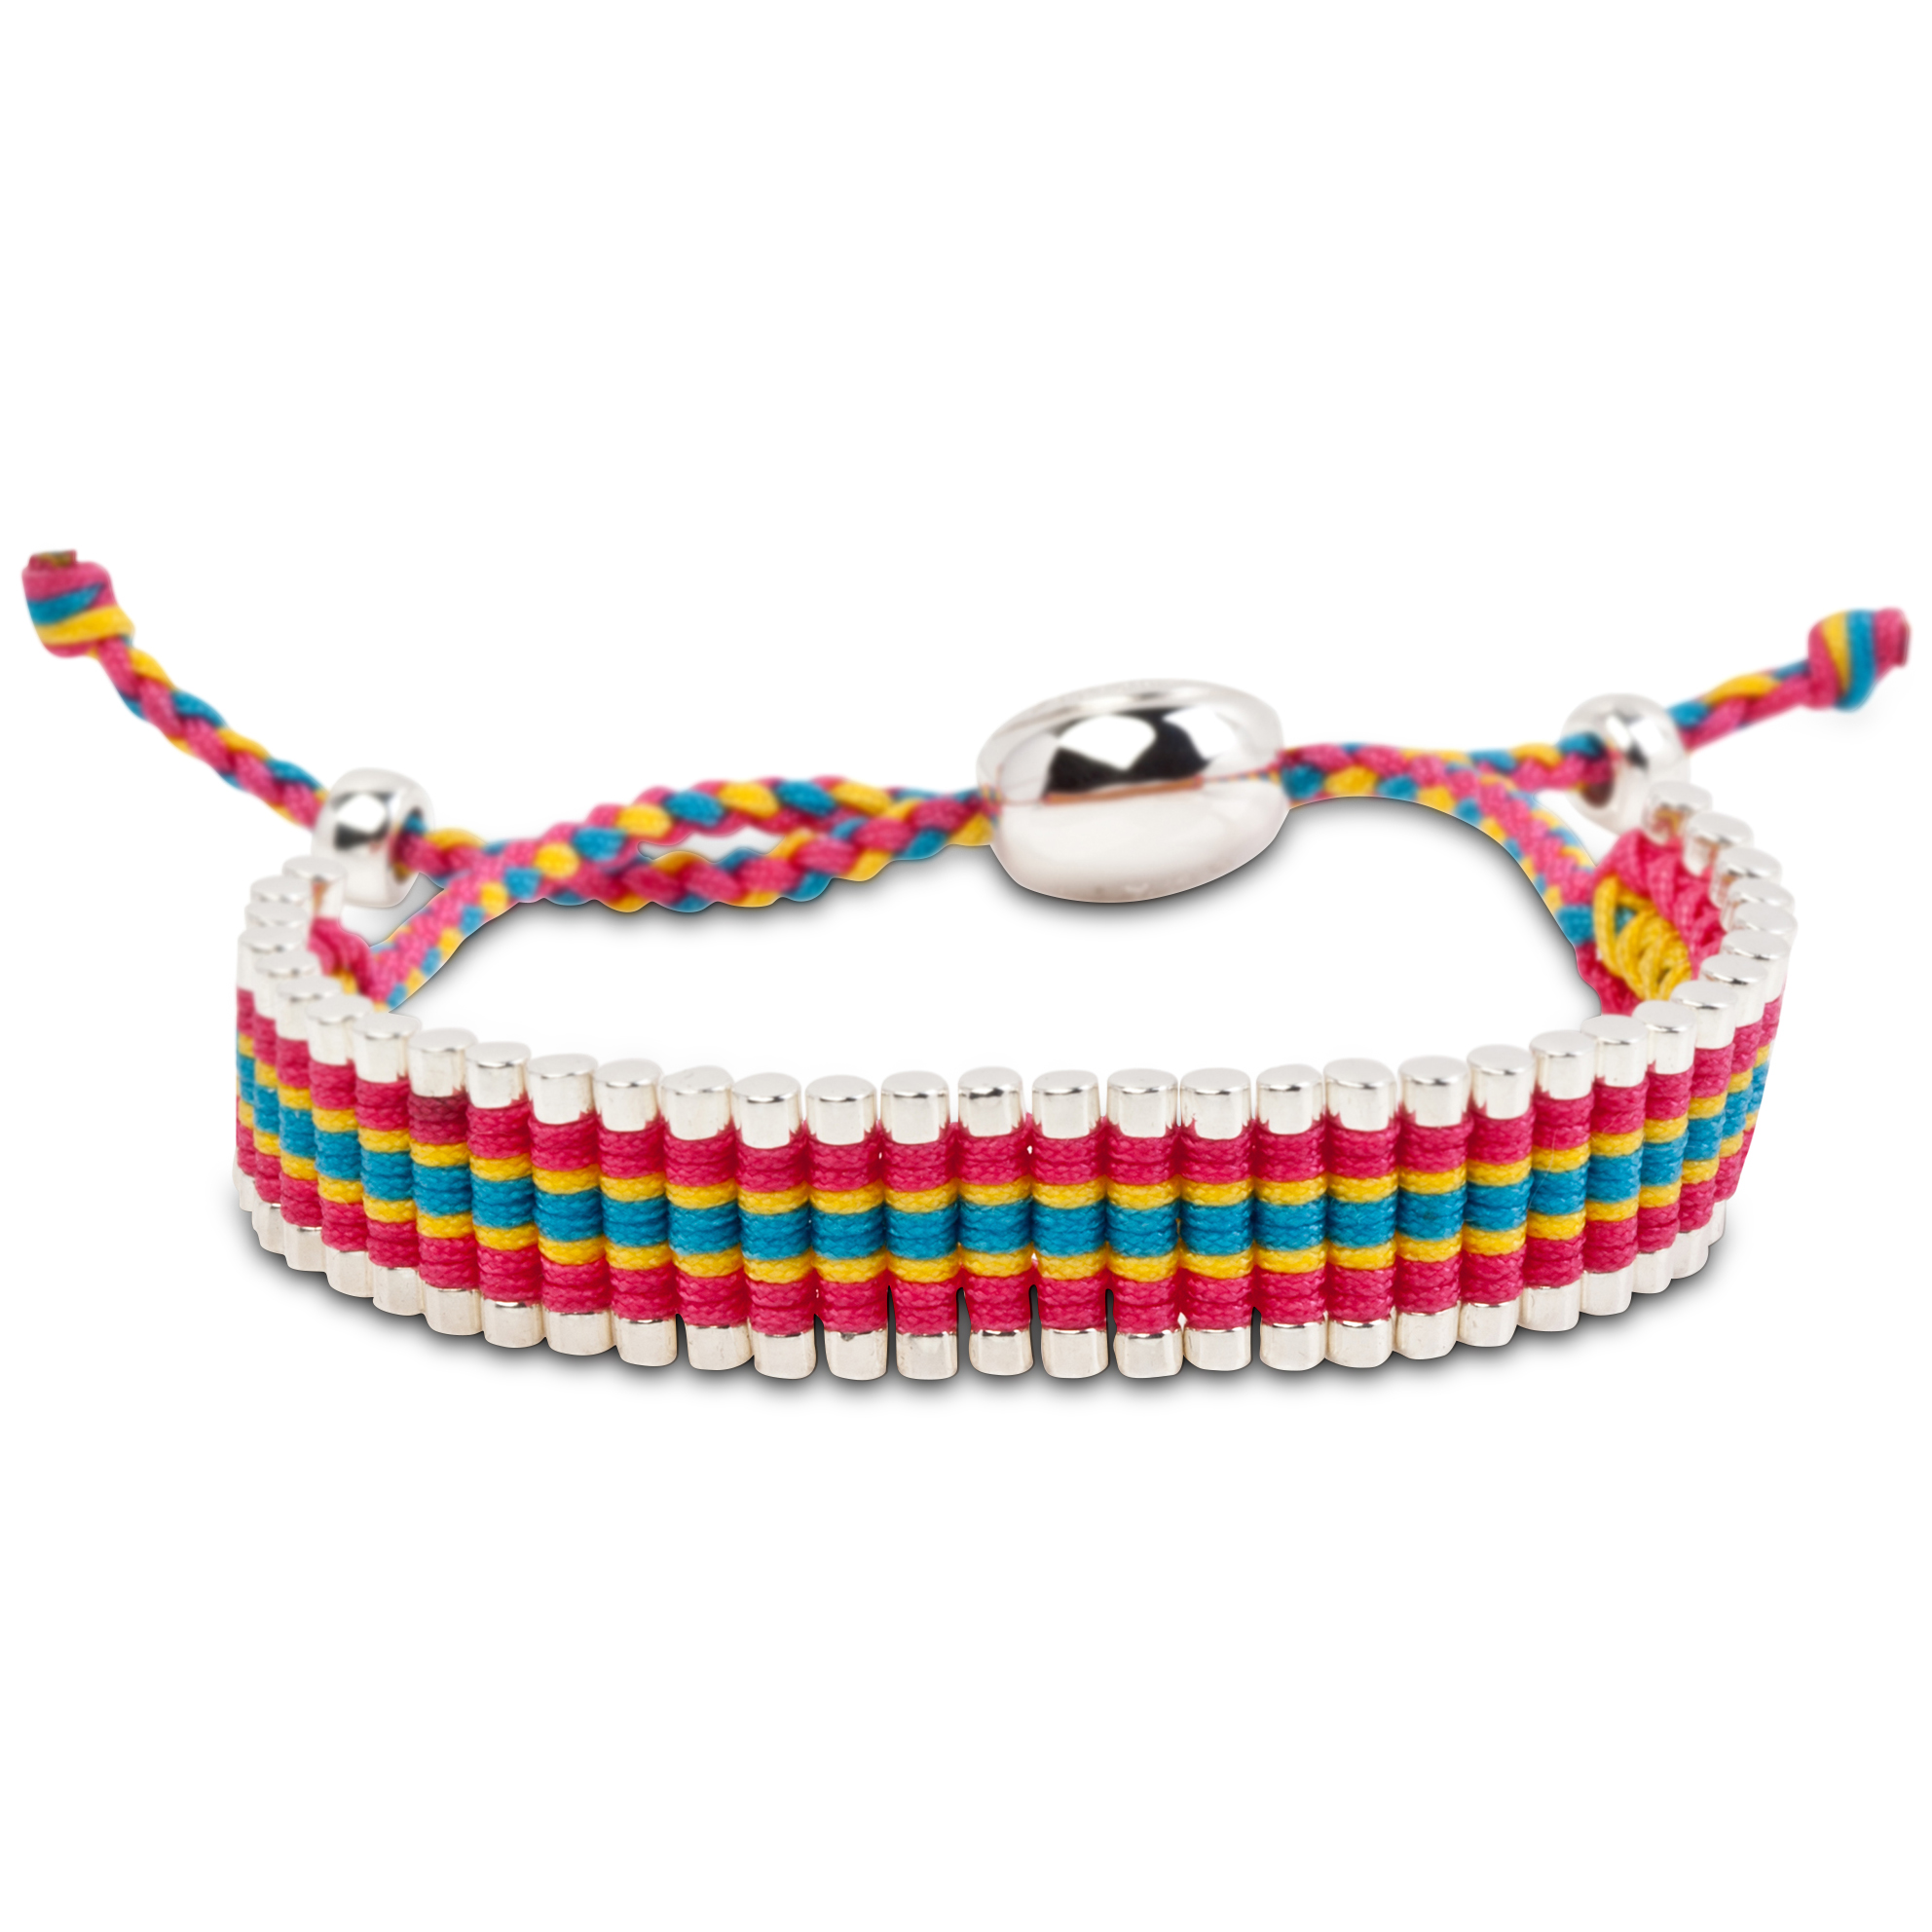 Wimbledon Friendship Bracelet 2014